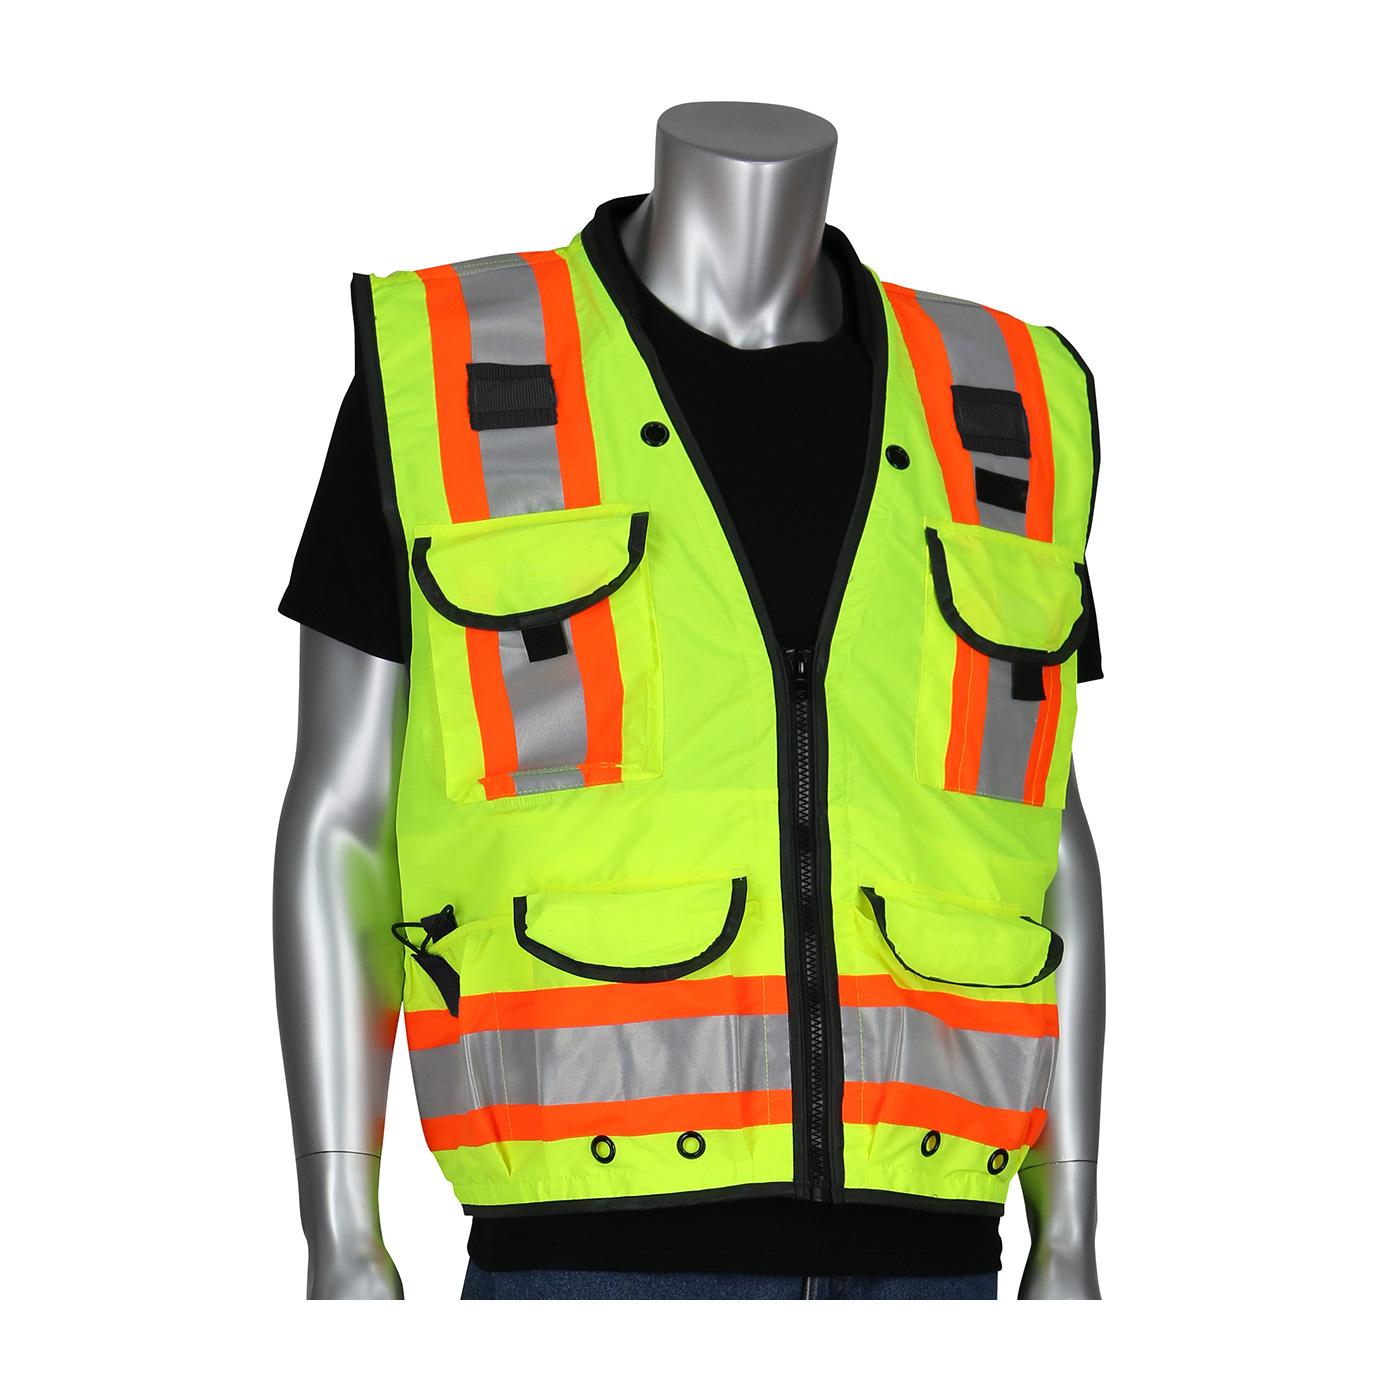 PIP® ANSI Type R Class 2 Yellow Two-Tone Fifteen Pocket Tech-Ready Ripstop Surveyors Vest with Mesh Back #302-0900